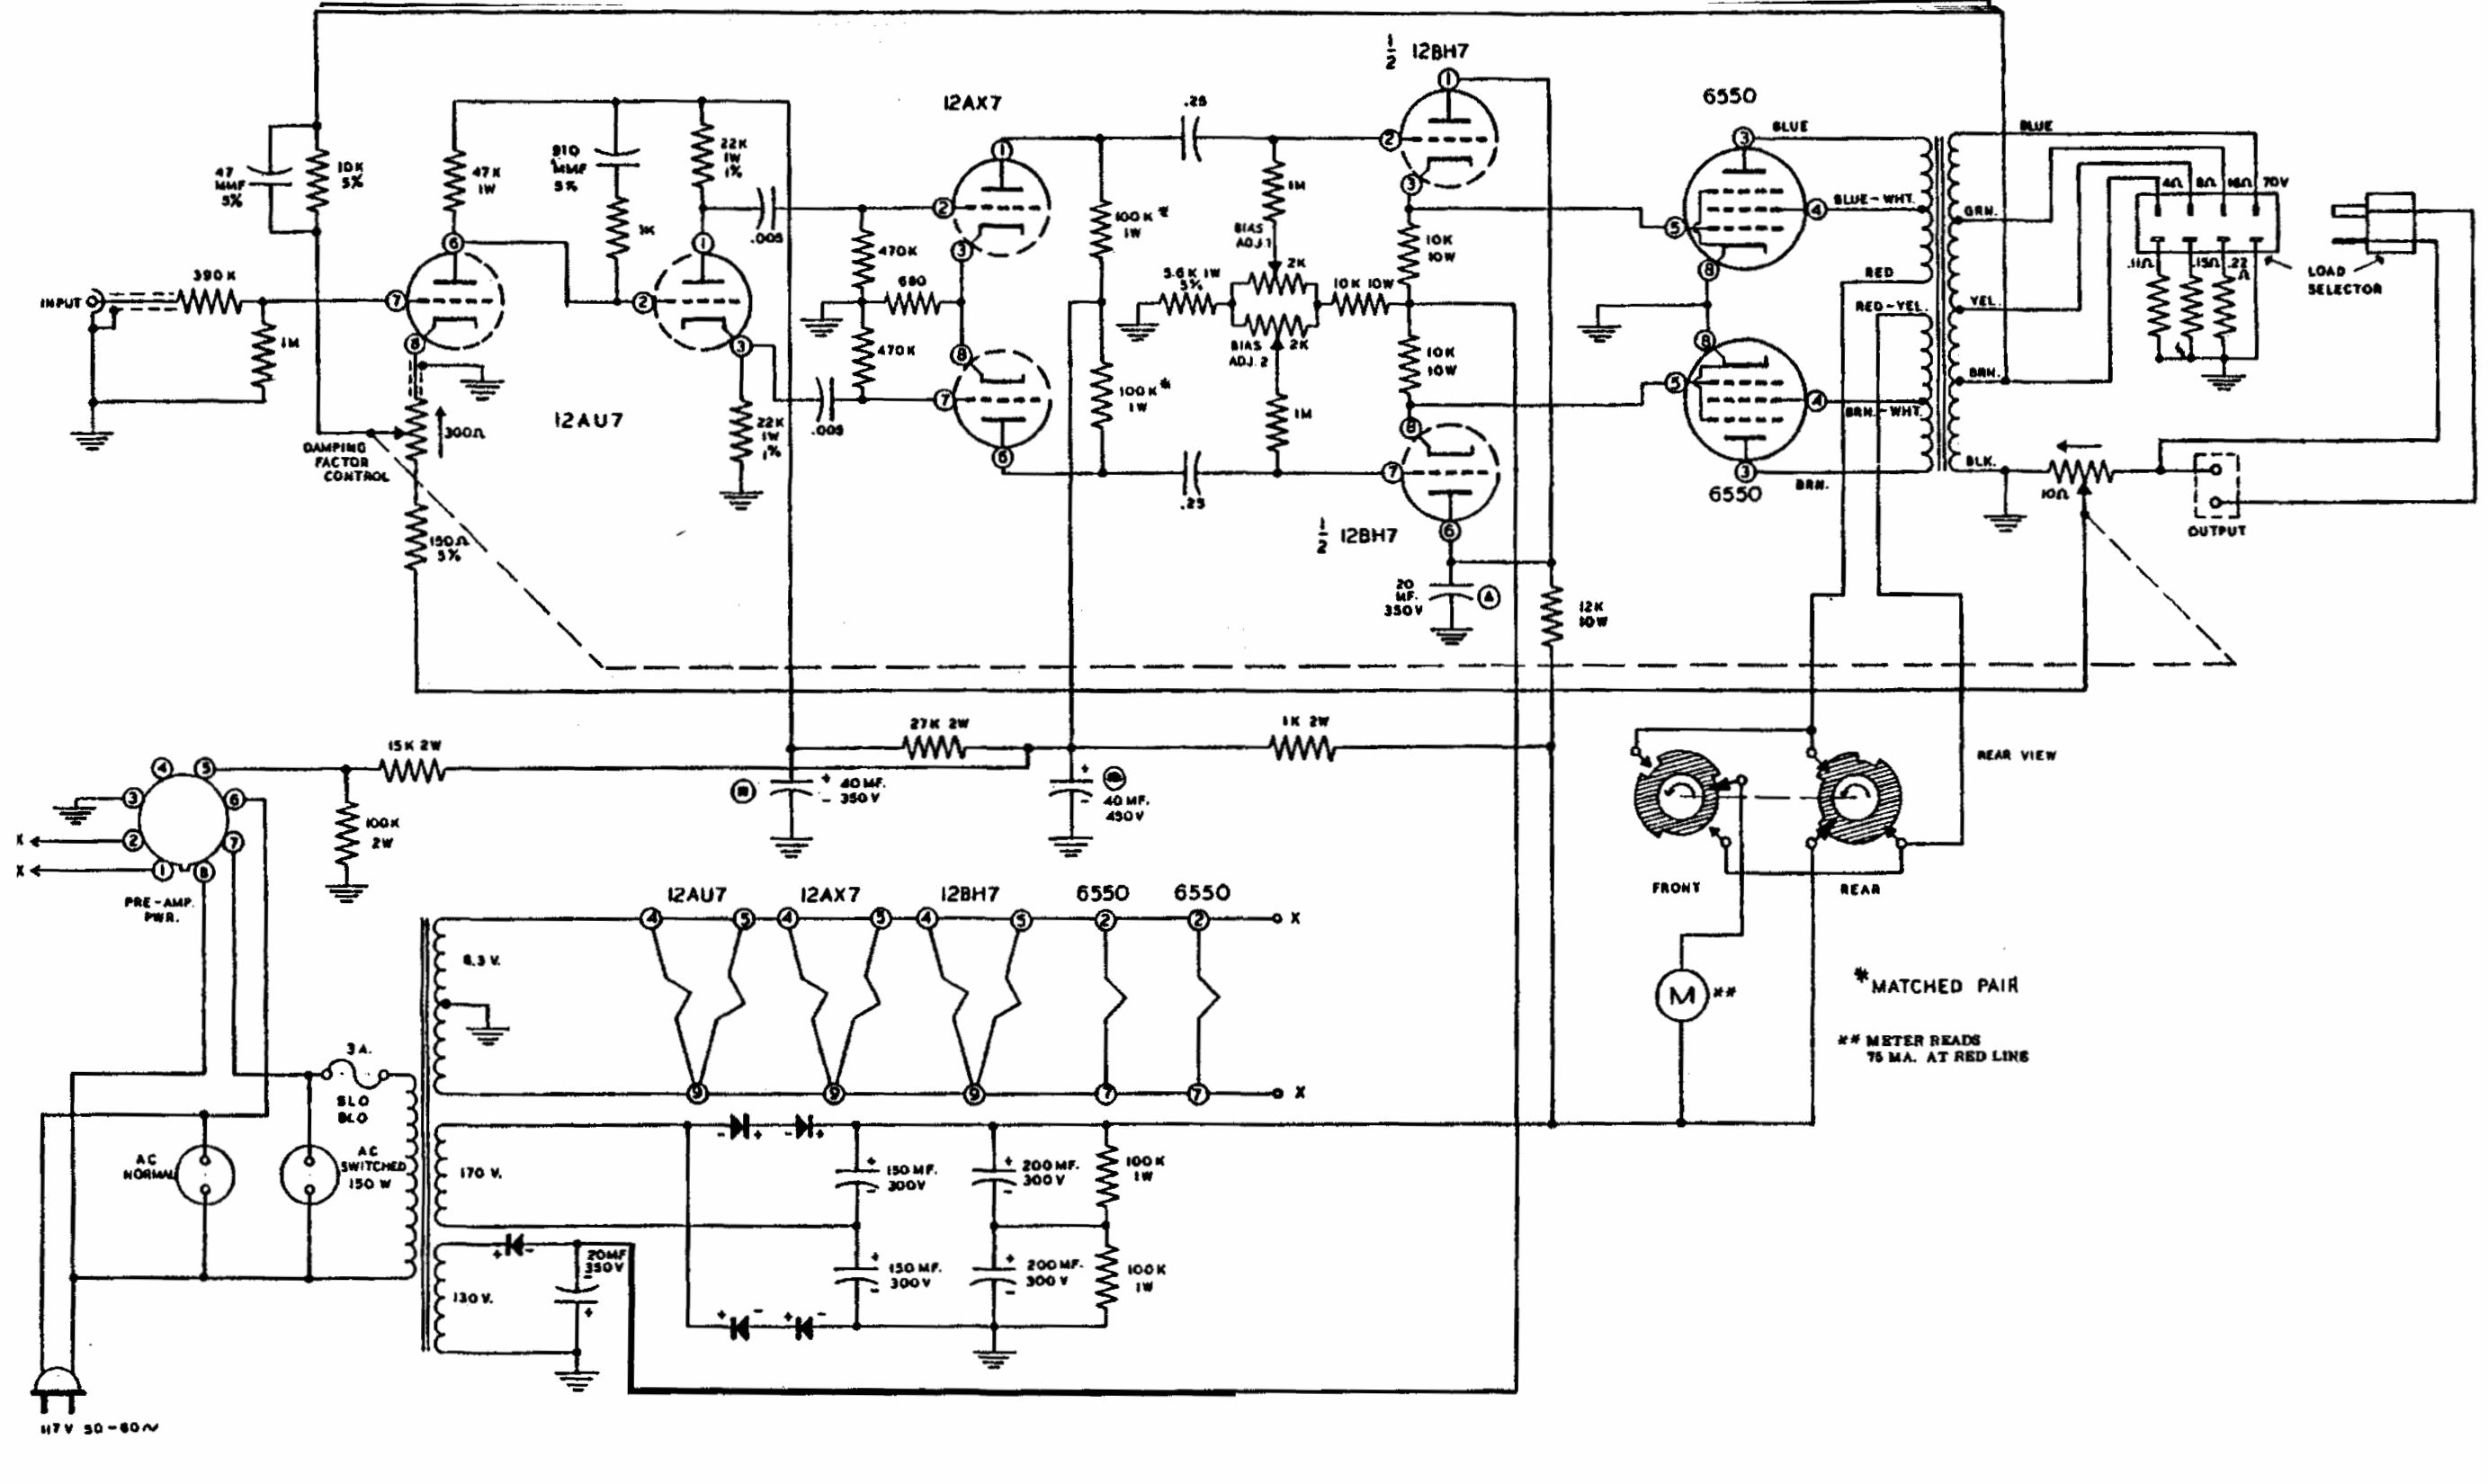 Heathkit Wiring Diagrams : 24 Wiring Diagram Images